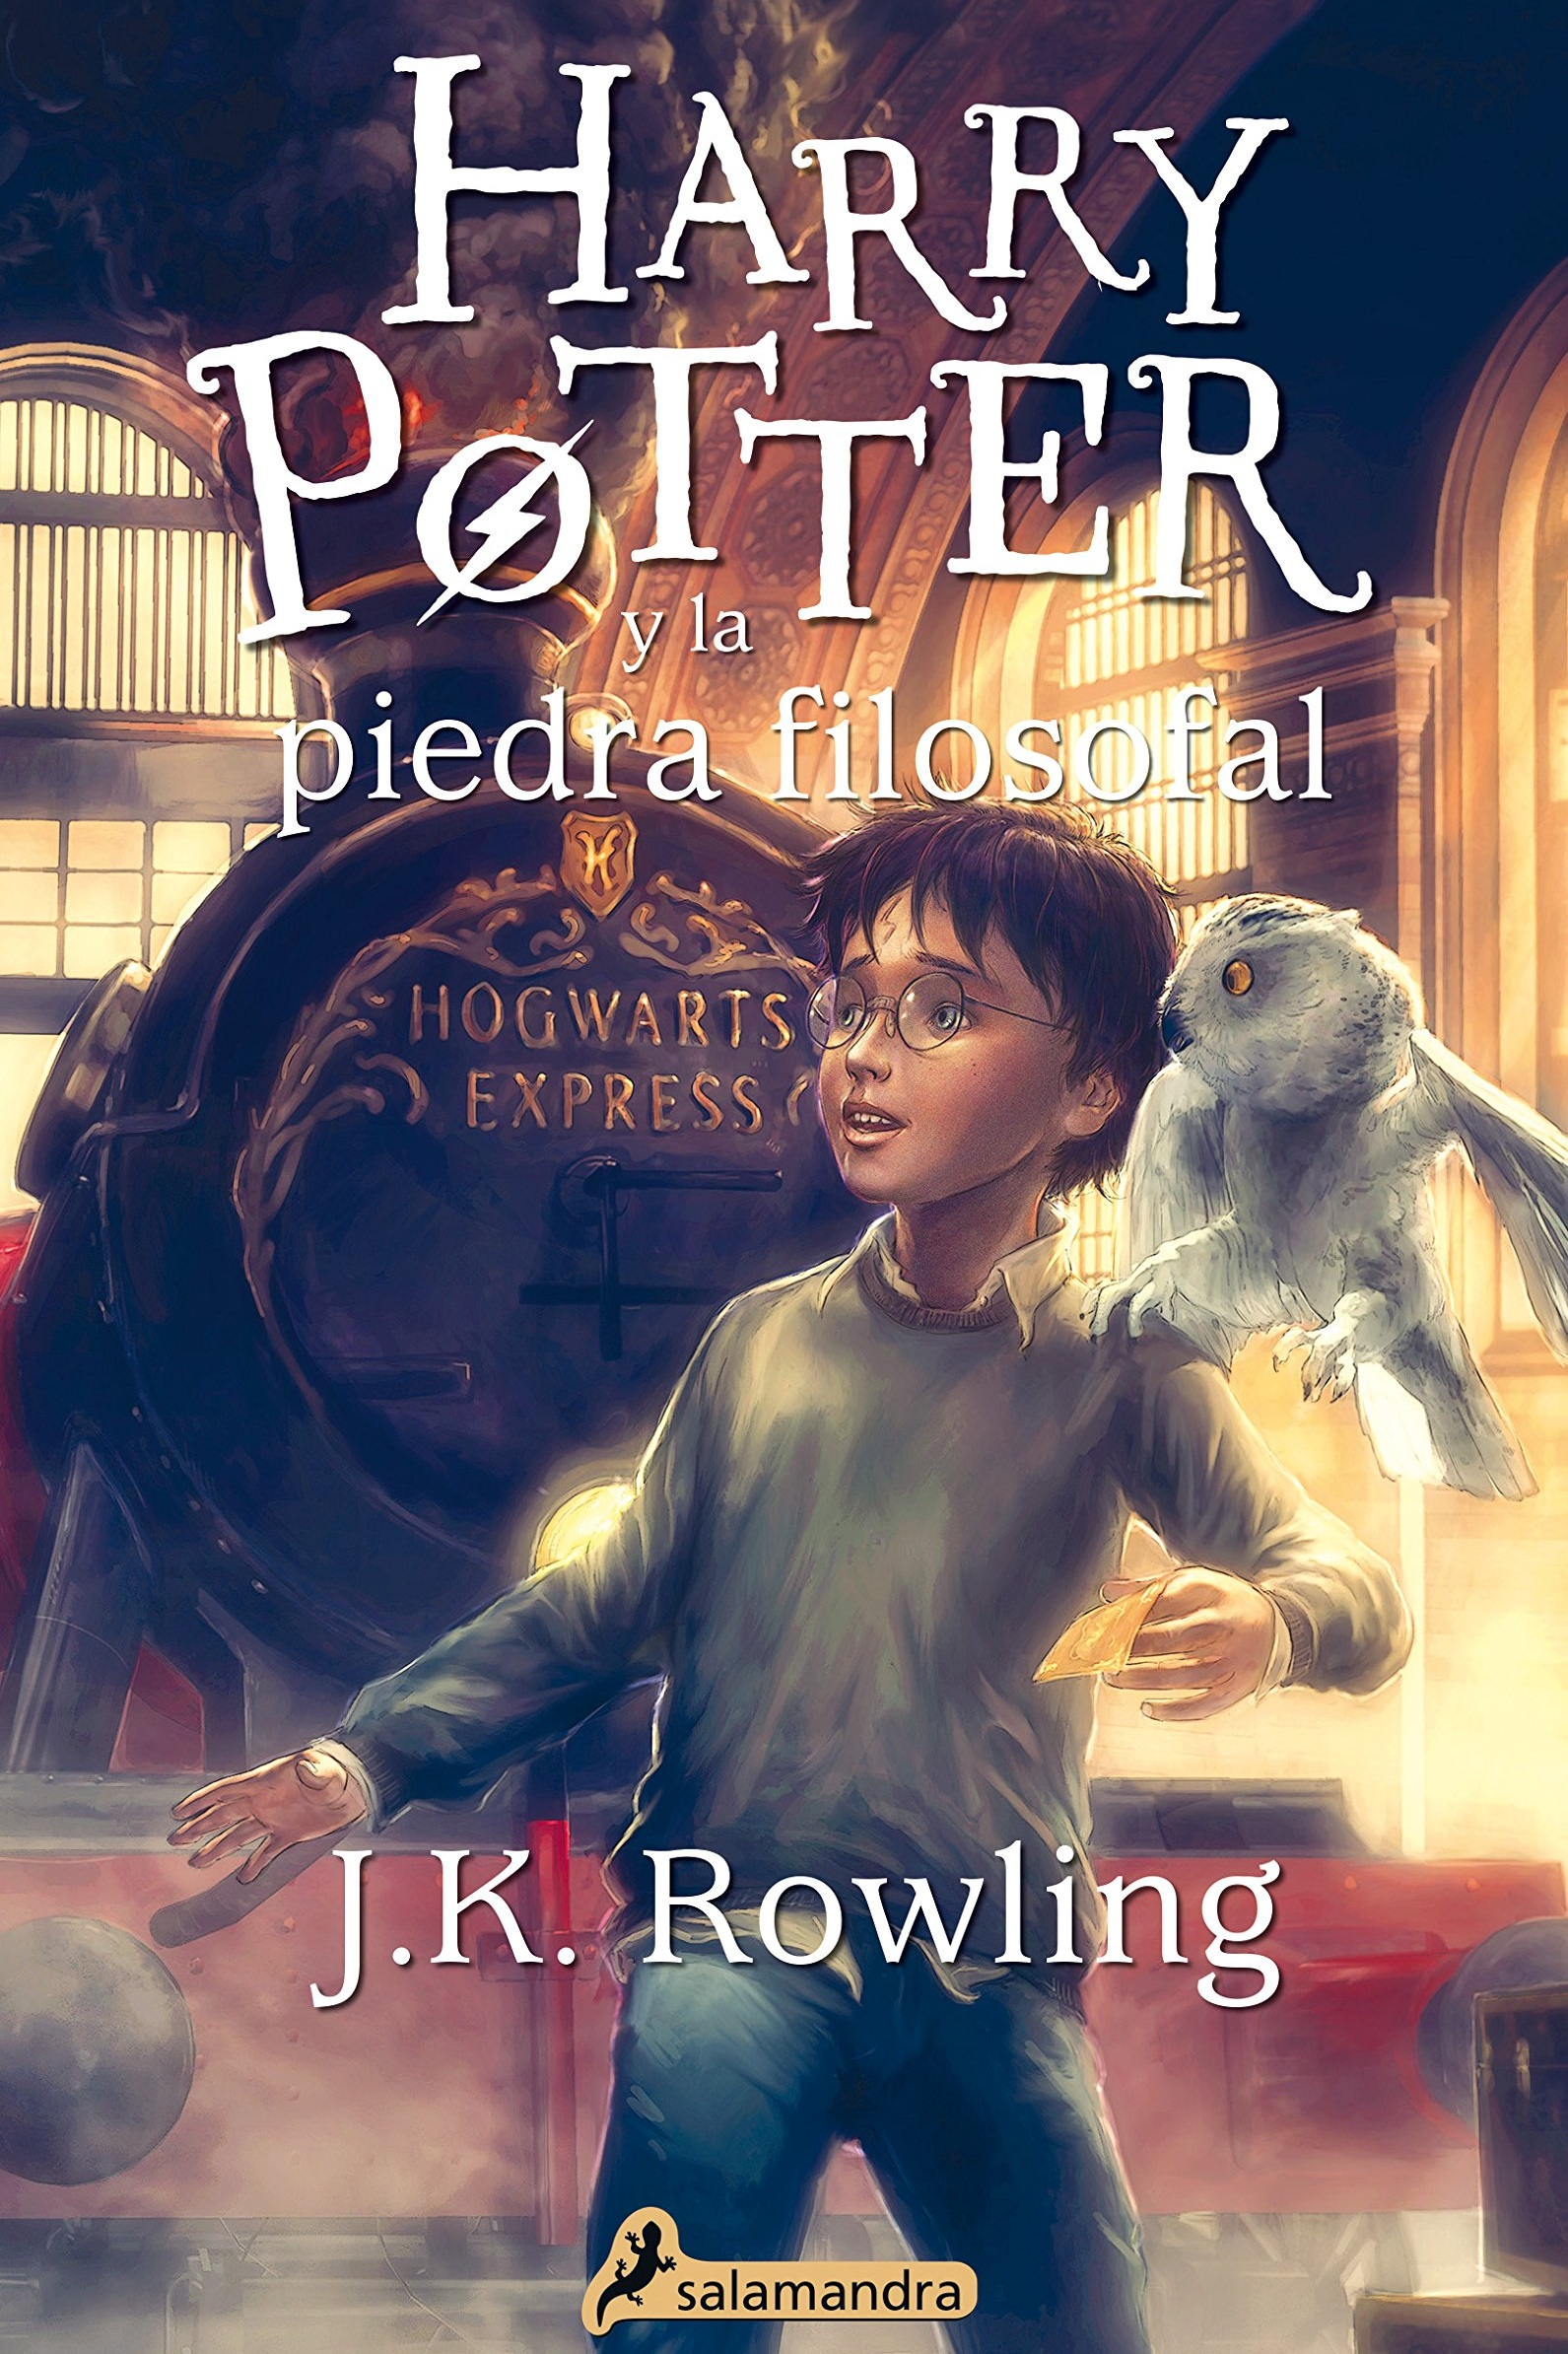 Harry Potter and the Philosopher's Stone  By: J.K. Rowling   Hogwarts, wizards, muggles, and magic!